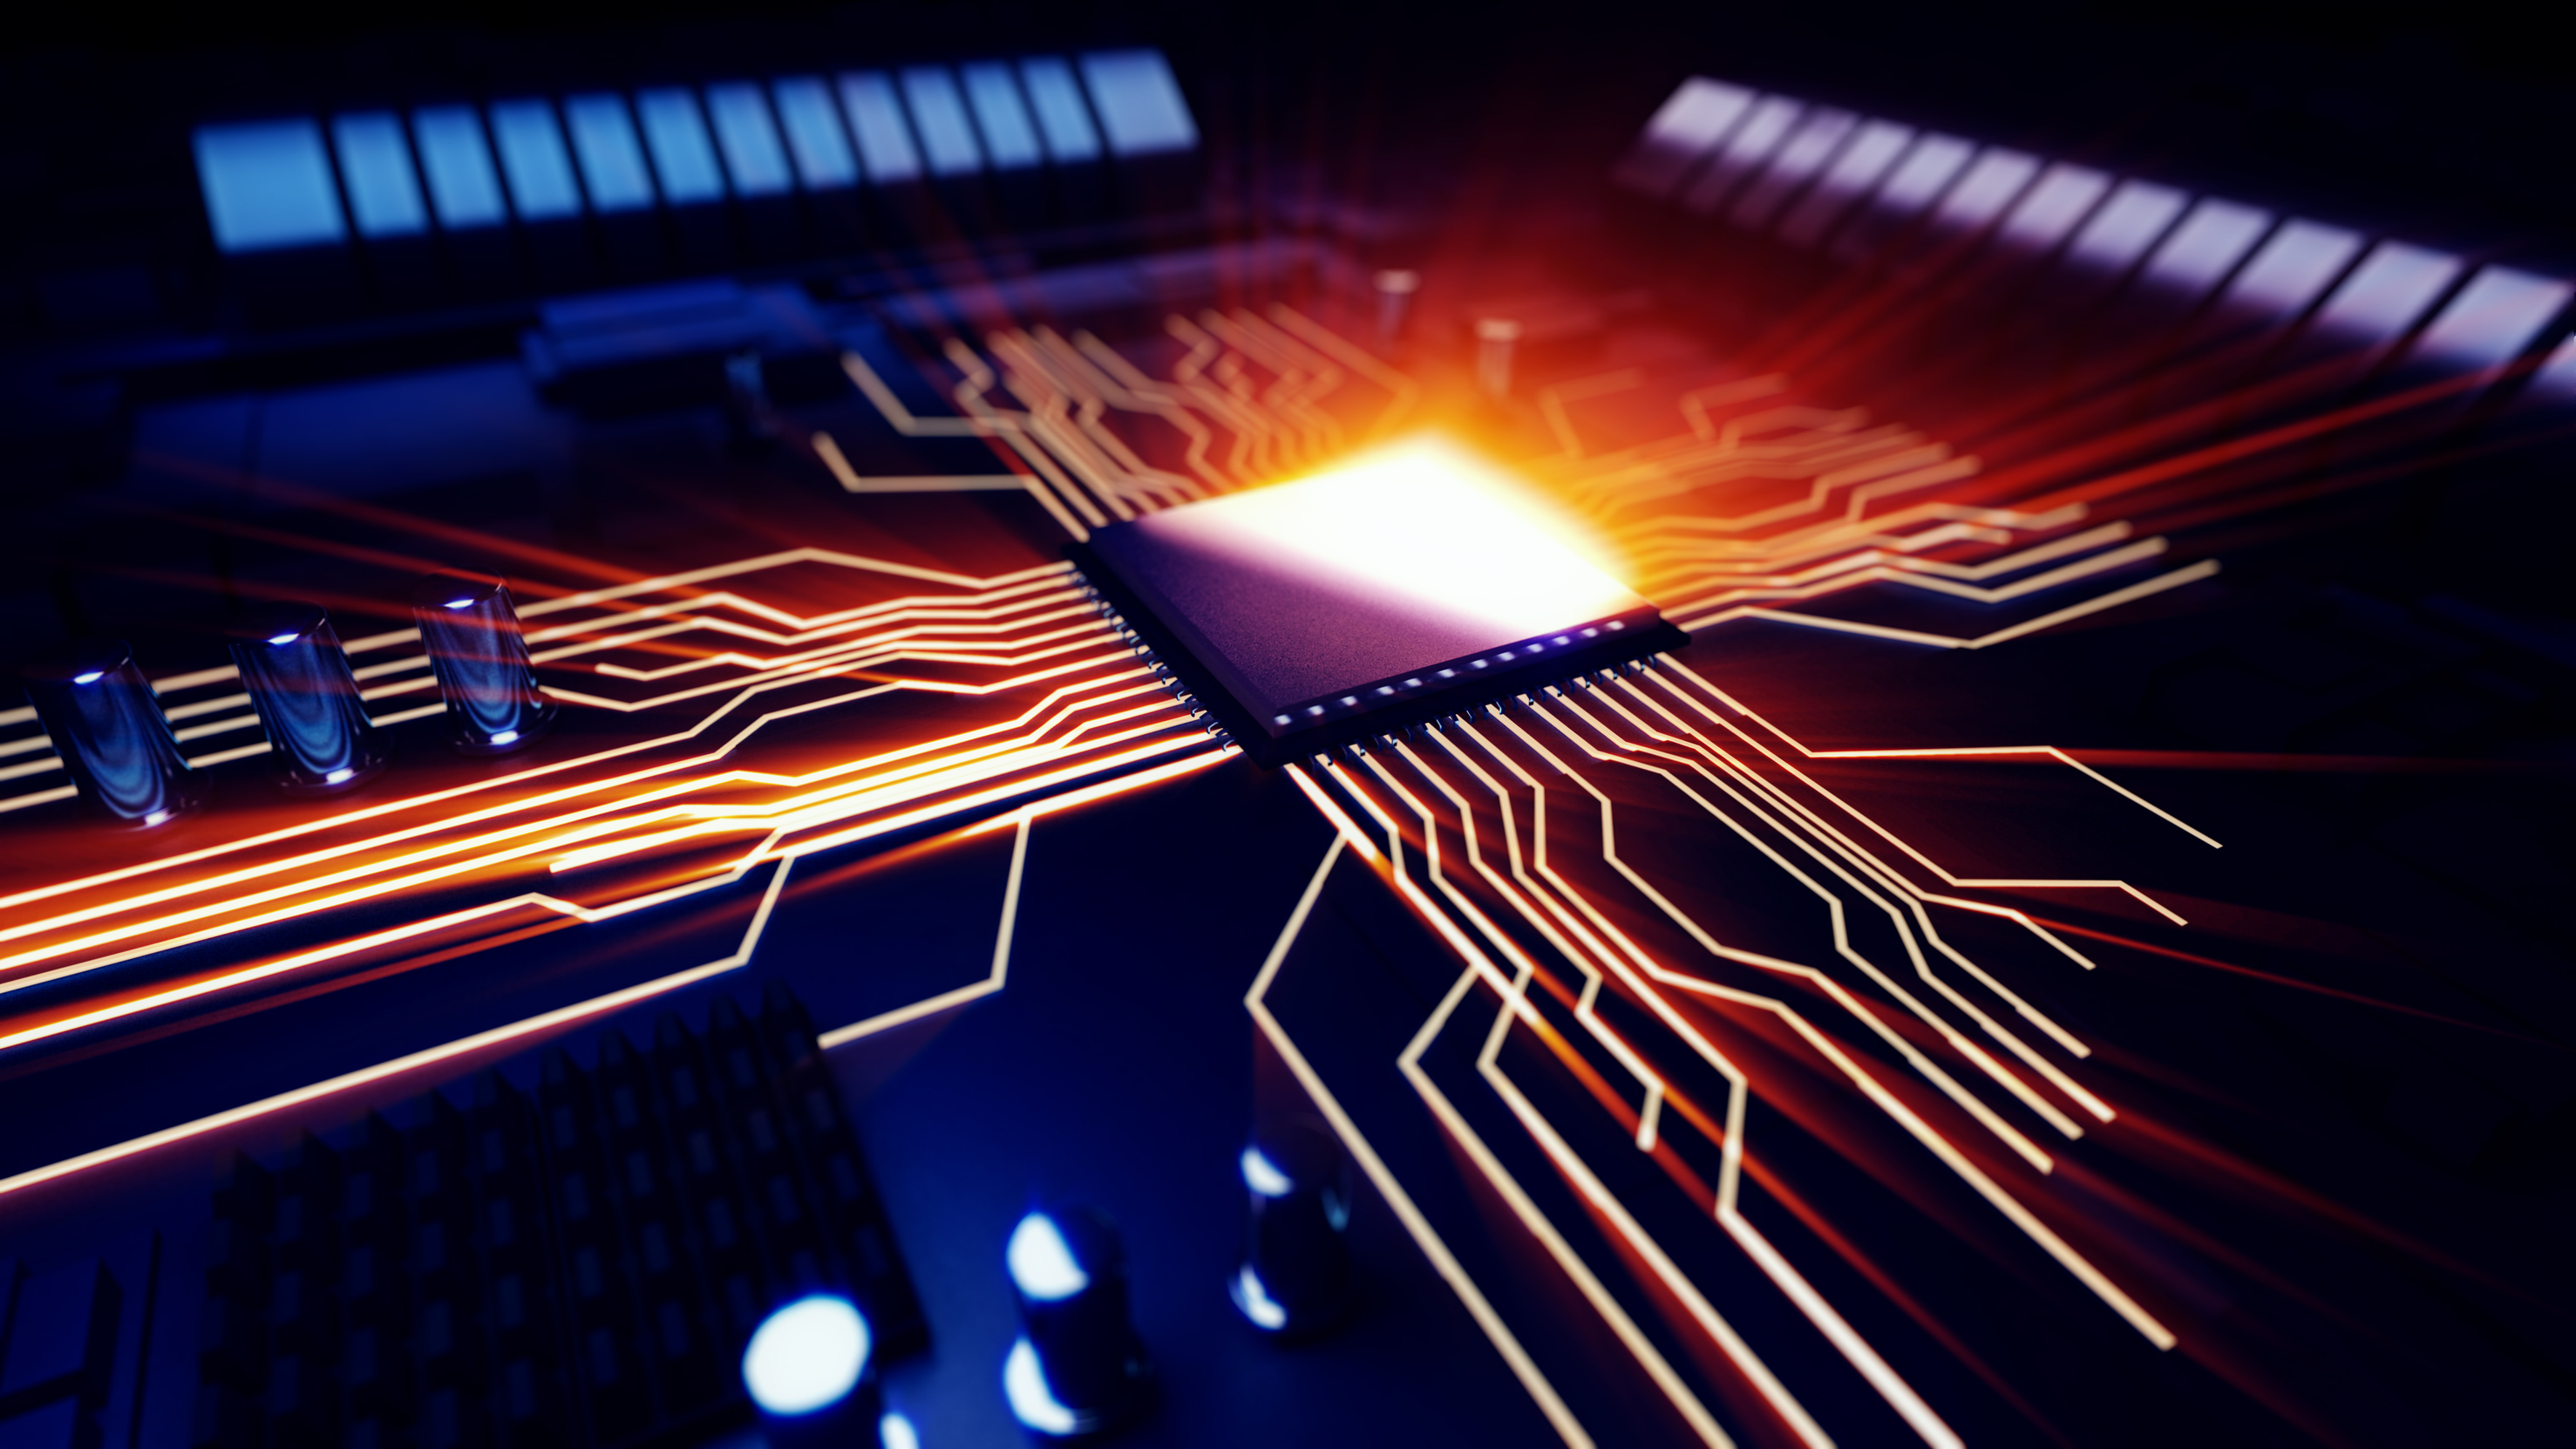 3d rendered illustration of macro view central processor unit on mainboard with shine lines